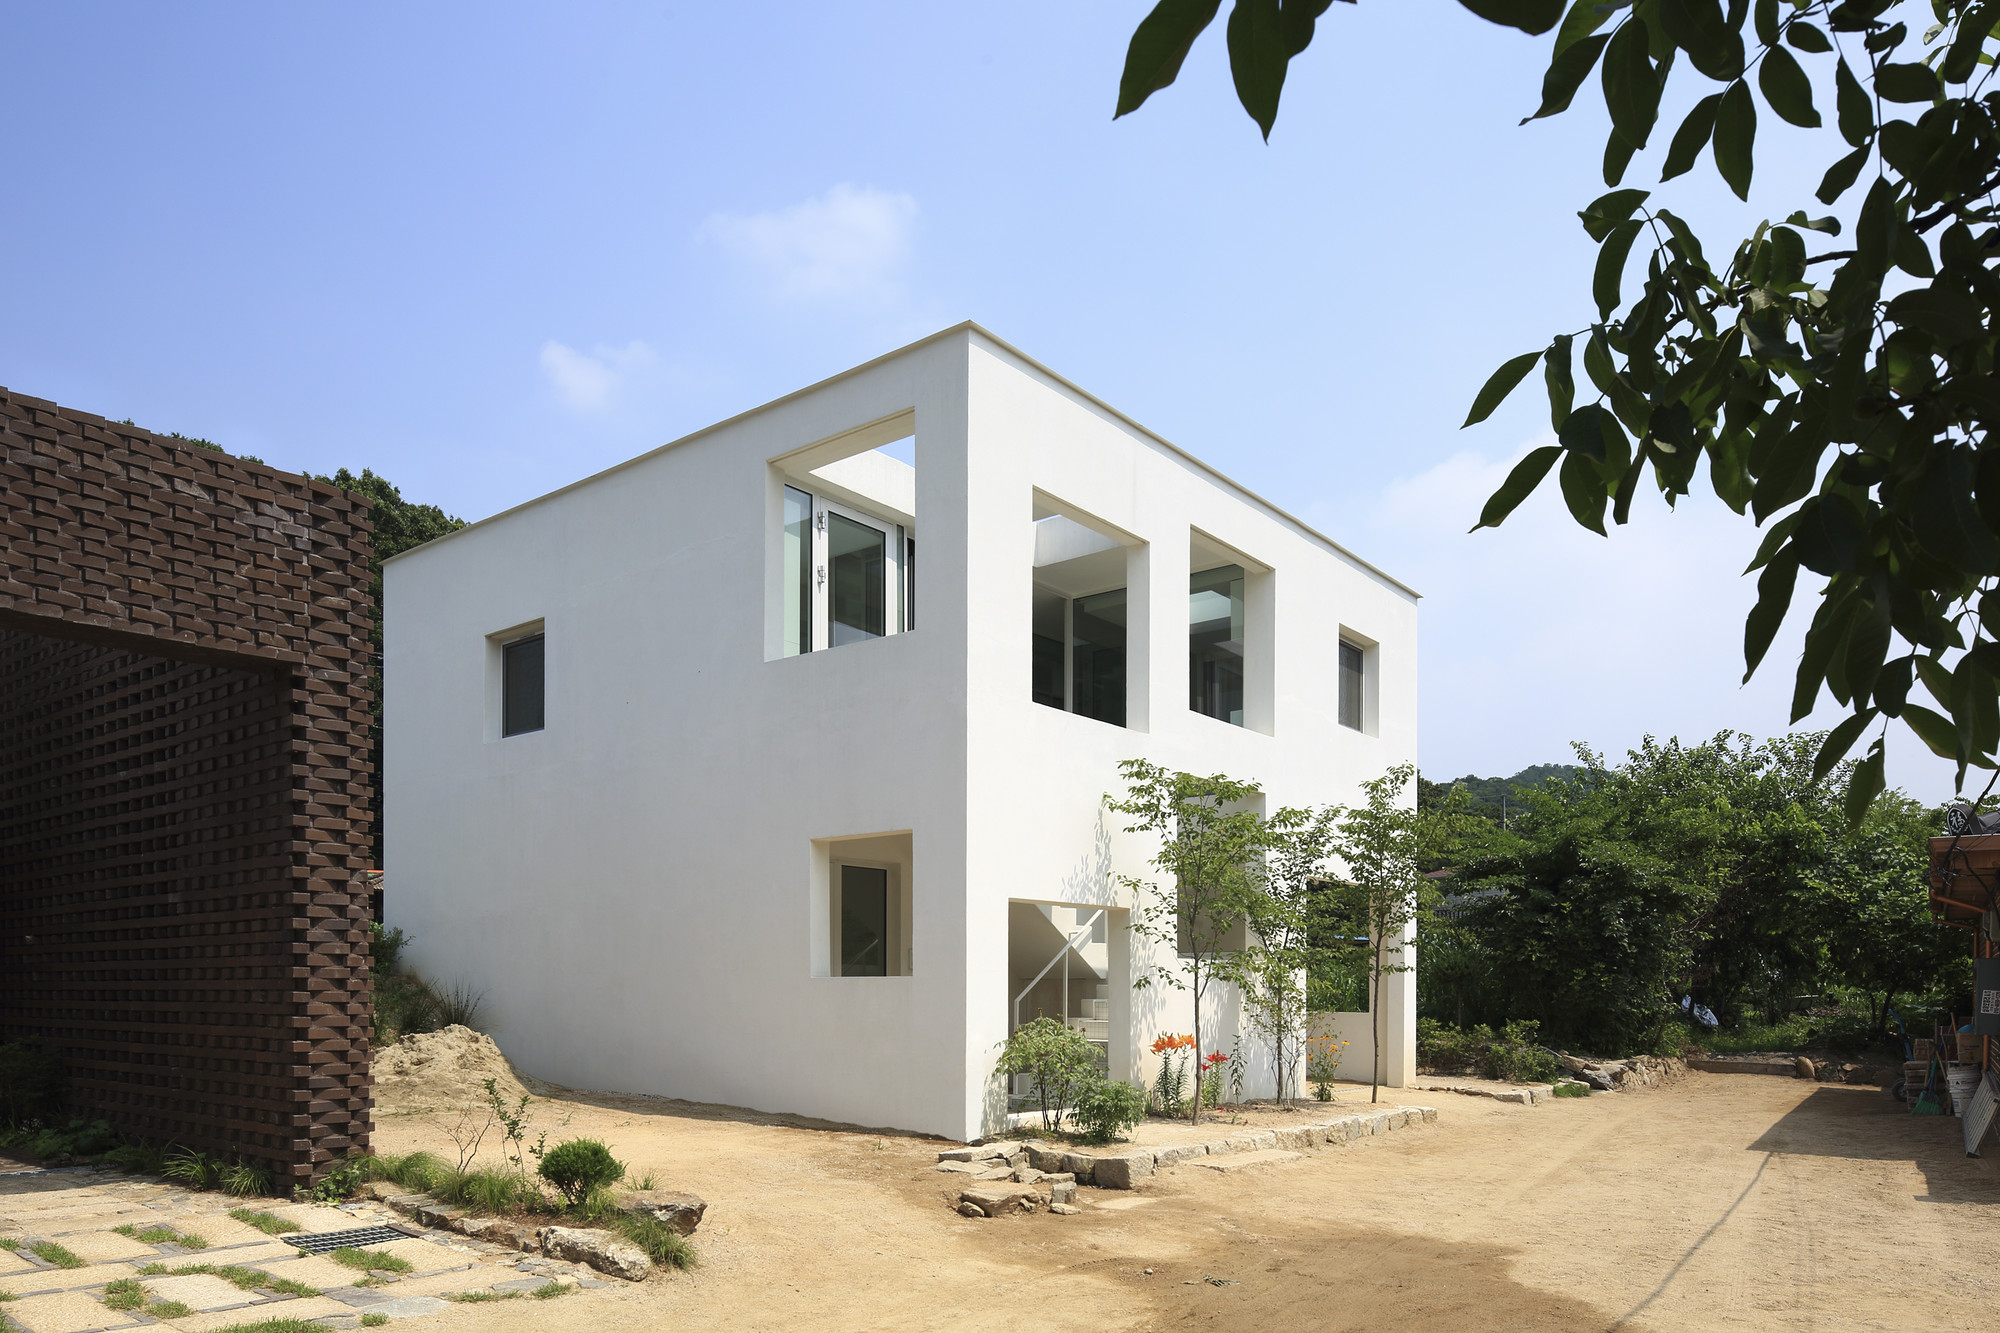 9X9 Experimental House / YounghanChung Architects